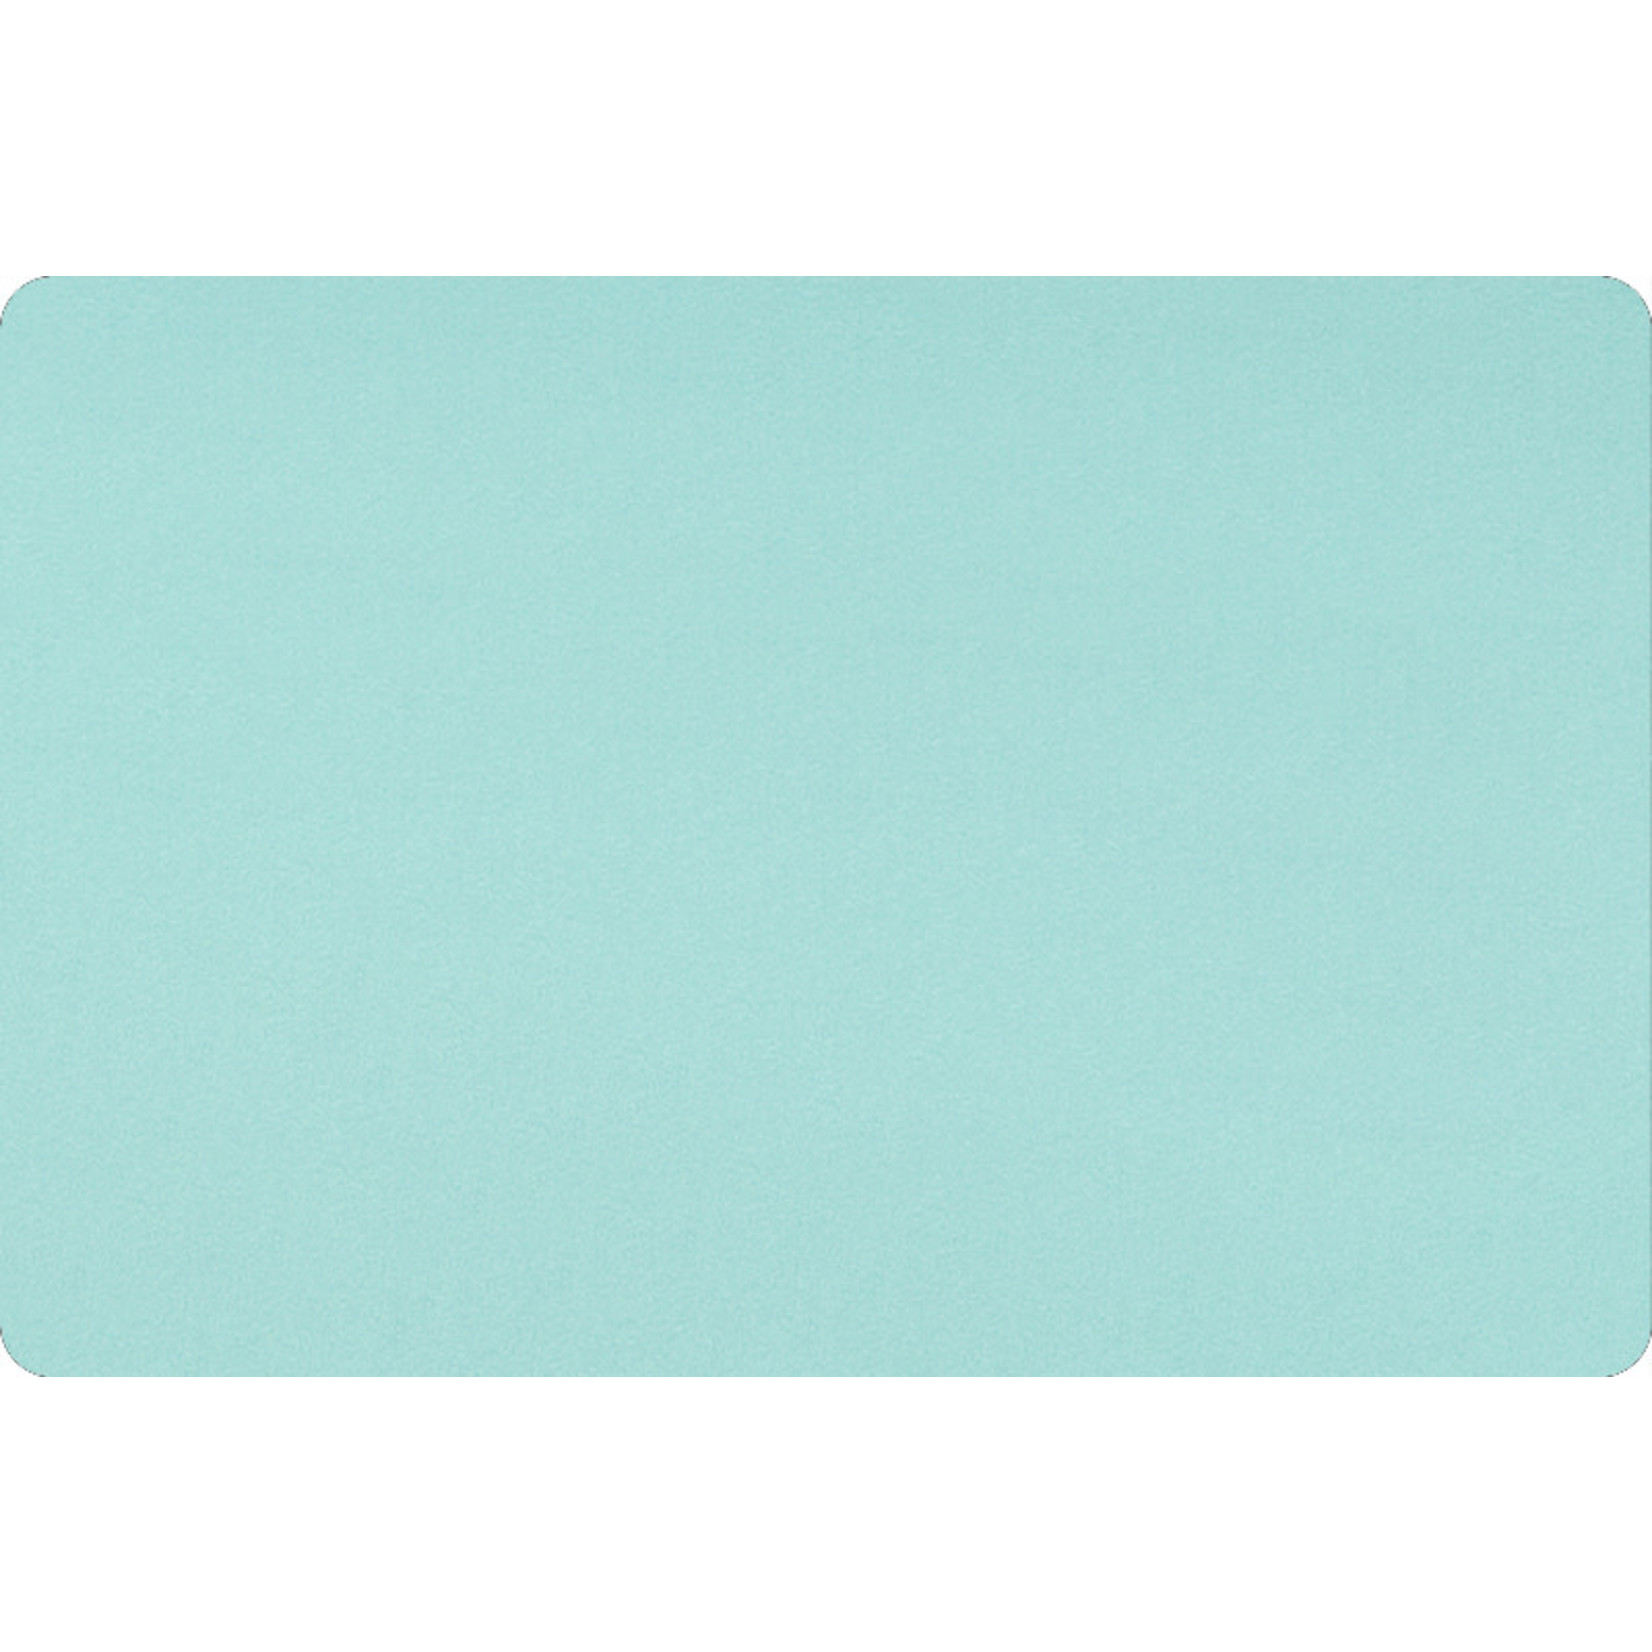 """Shannon Fabrics Minky, Extra Wide Solid Cuddle3, 90"""" Saltwater, (by the inch)"""